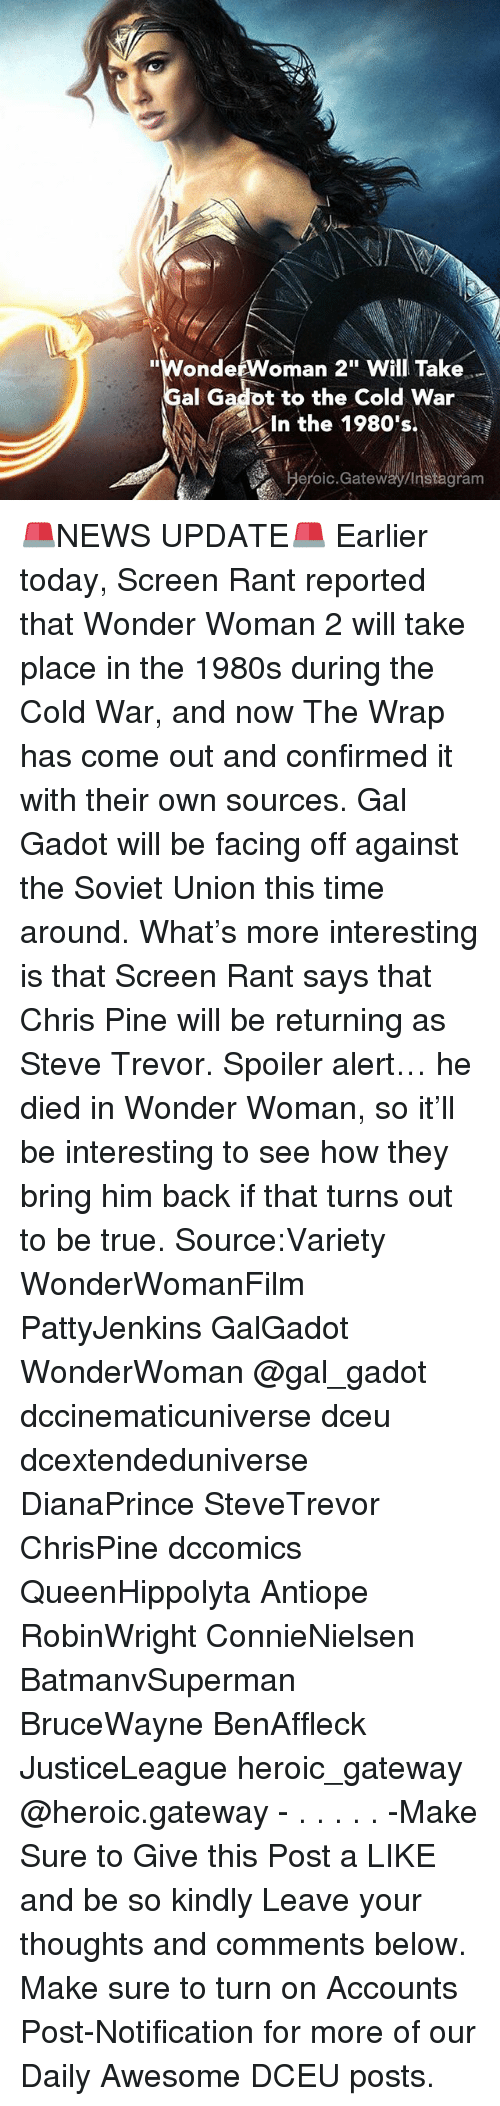 "Chris Pine, Instagram, and Memes: ""WondetWoman 2"" Will Take  al Gadot to the Cold War  In the 1980's  eroic.Gateway/Instagram 🚨NEWS UPDATE🚨 Earlier today, Screen Rant reported that Wonder Woman 2 will take place in the 1980s during the Cold War, and now The Wrap has come out and confirmed it with their own sources. Gal Gadot will be facing off against the Soviet Union this time around. What's more interesting is that Screen Rant says that Chris Pine will be returning as Steve Trevor. Spoiler alert… he died in Wonder Woman, so it'll be interesting to see how they bring him back if that turns out to be true. Source:Variety WonderWomanFilm PattyJenkins GalGadot WonderWoman @gal_gadot dccinematicuniverse dceu dcextendeduniverse DianaPrince SteveTrevor ChrisPine dccomics QueenHippolyta Antiope RobinWright ConnieNielsen BatmanvSuperman BruceWayne BenAffleck JusticeLeague heroic_gateway @heroic.gateway - . . . . . -Make Sure to Give this Post a LIKE and be so kindly Leave your thoughts and comments below. Make sure to turn on Accounts Post-Notification for more of our Daily Awesome DCEU posts."